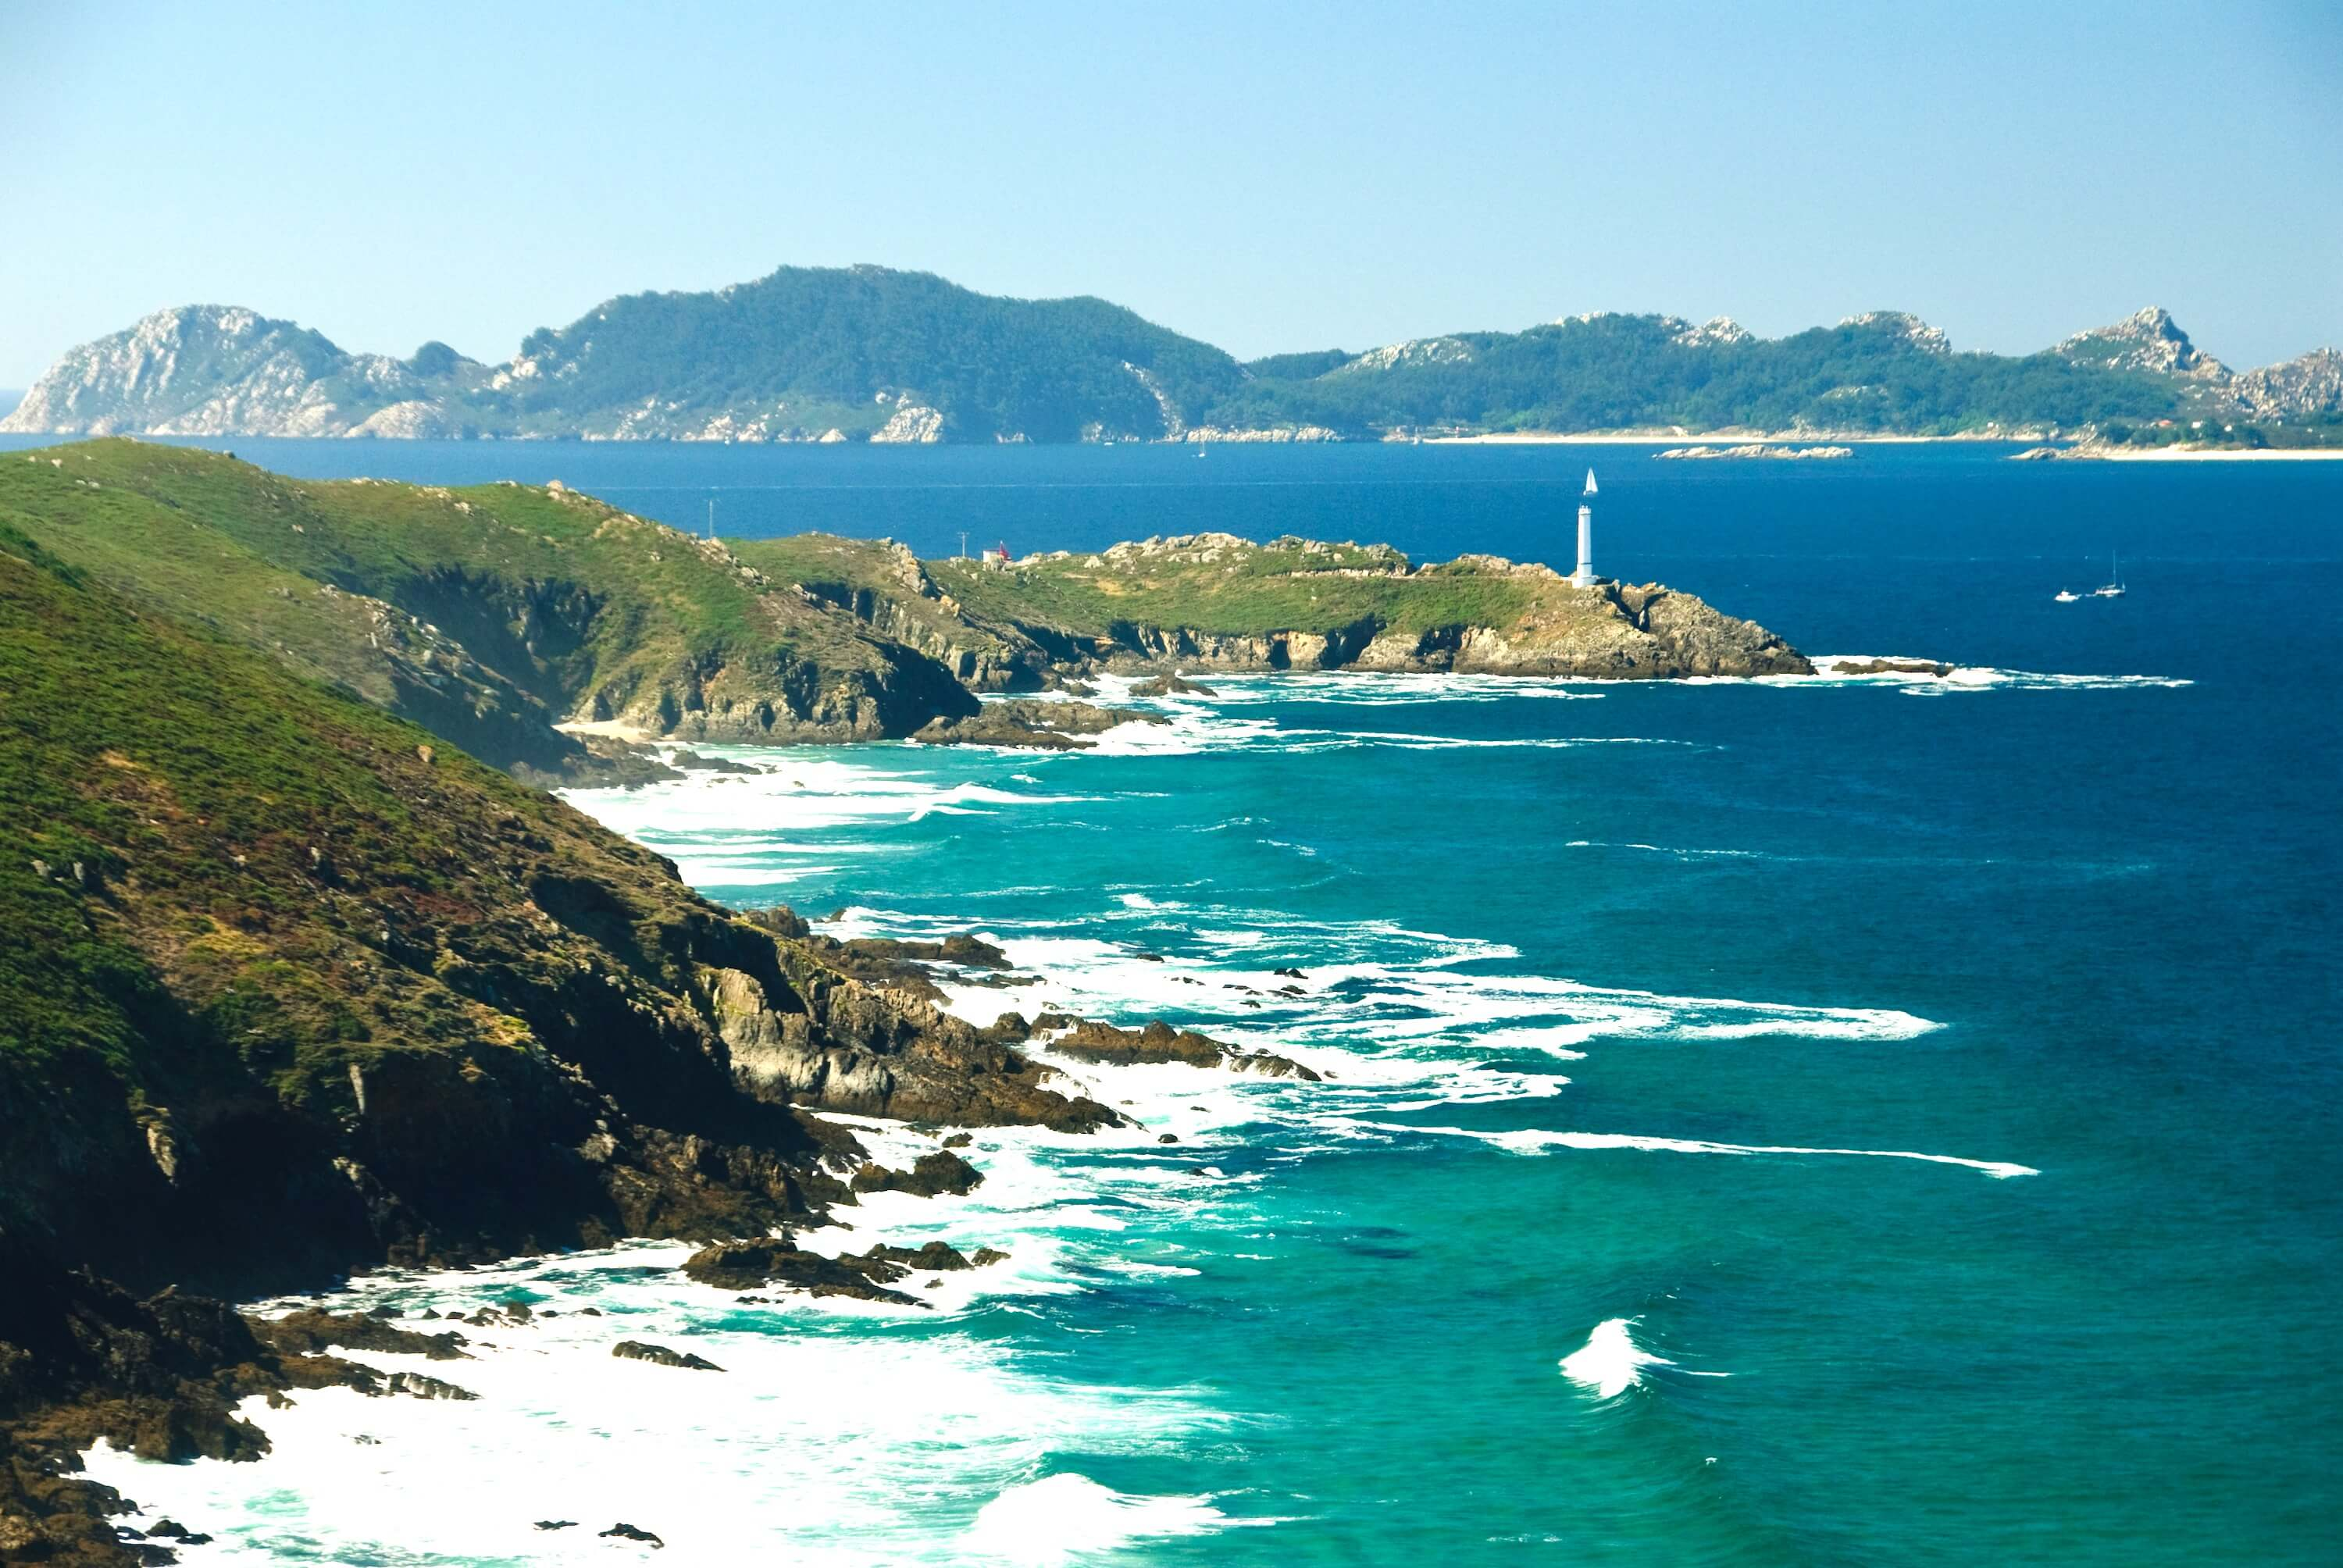 20 photos that will inspire you to visit the Cies Islands - Galicia Travel Spain Coast of the Cies Islands